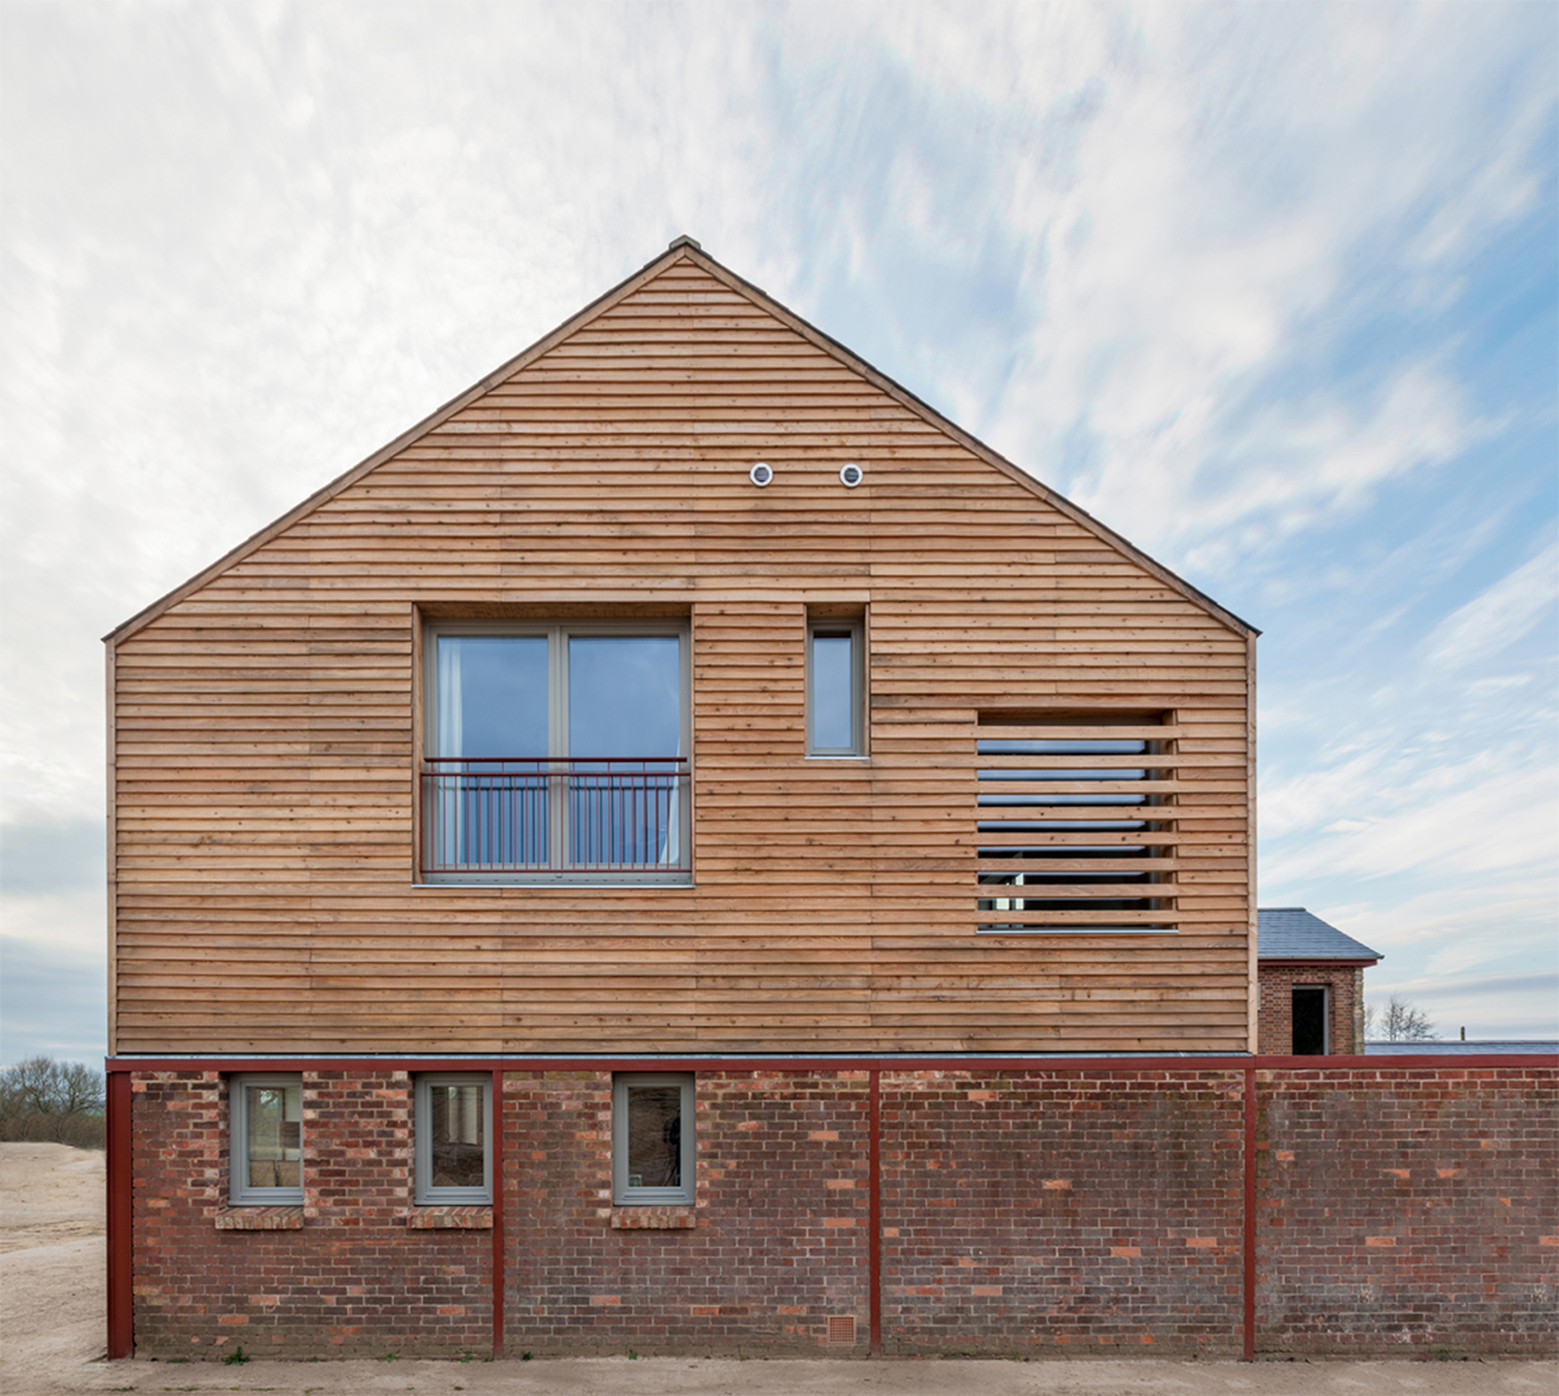 Timber Frame House AZERO architects ArchDaily